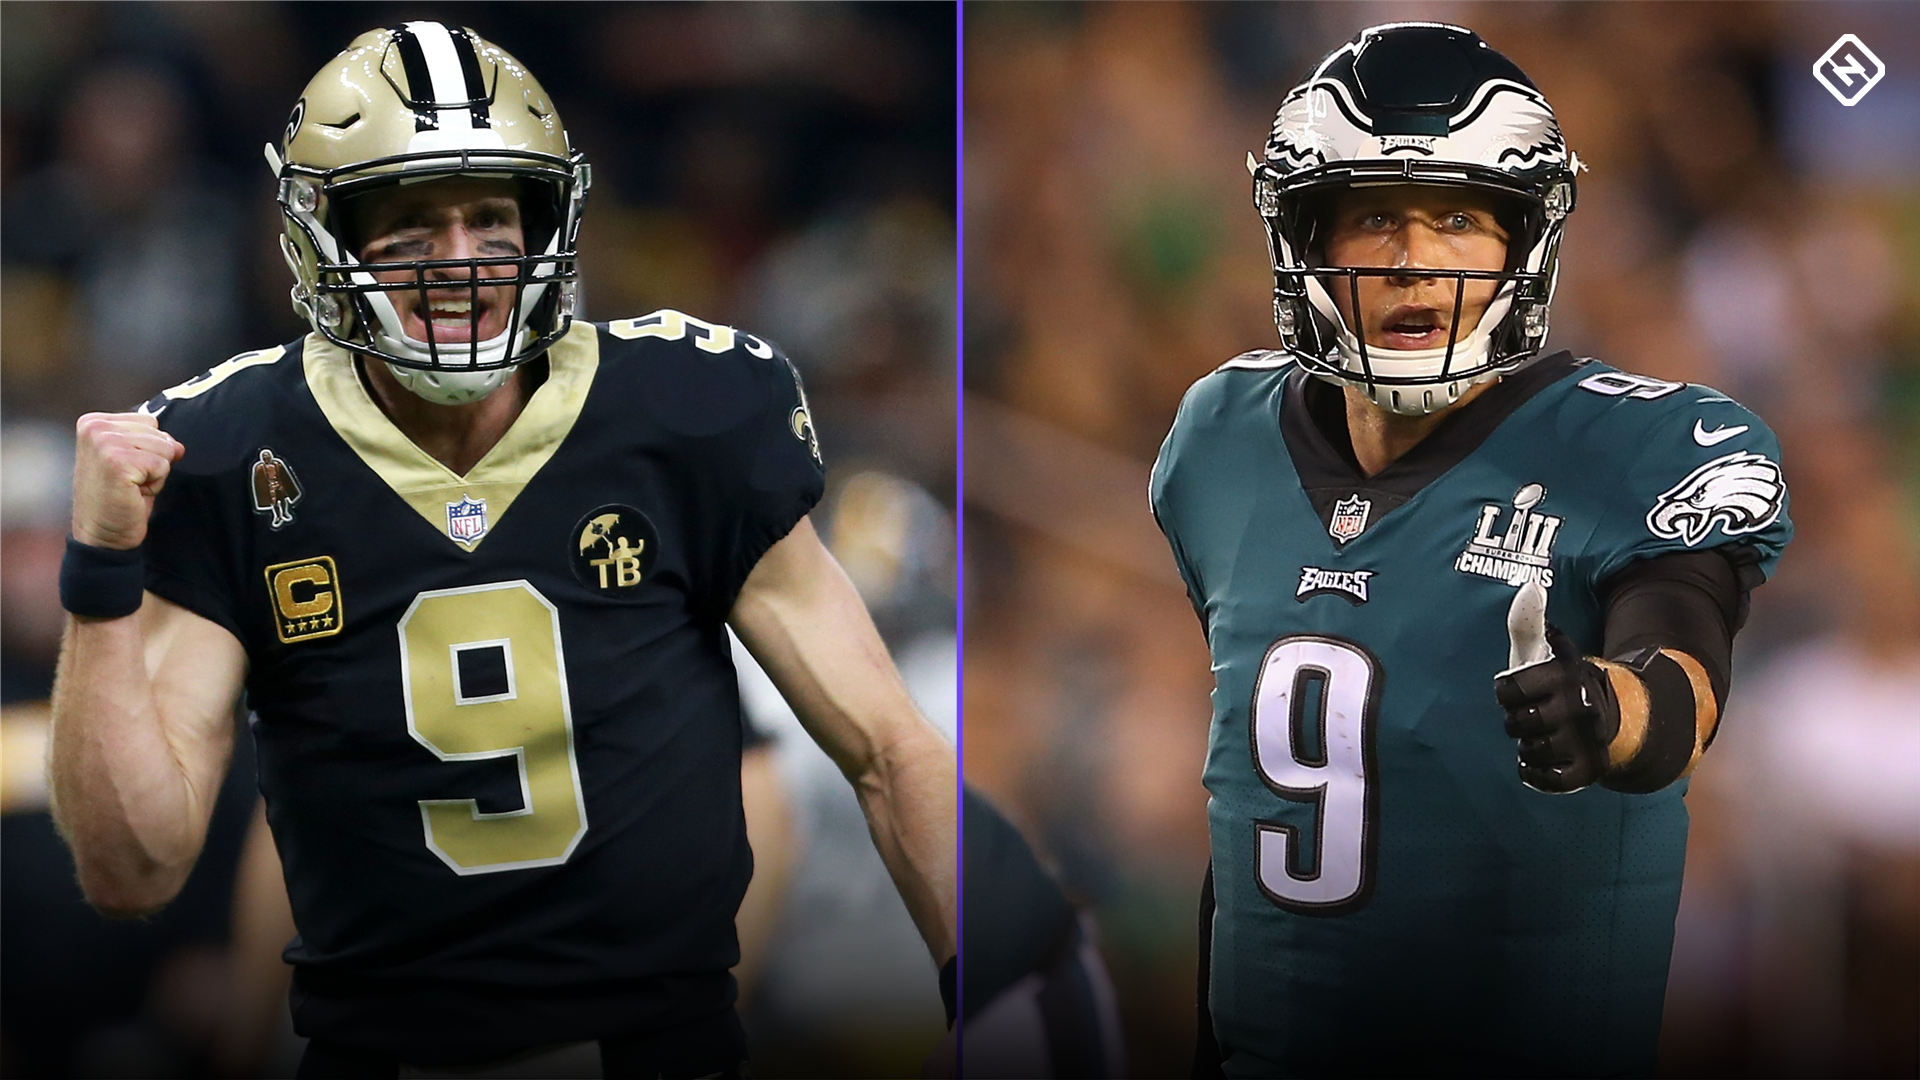 NFL playoffs 2019: Ranking every team's real chances to win Super